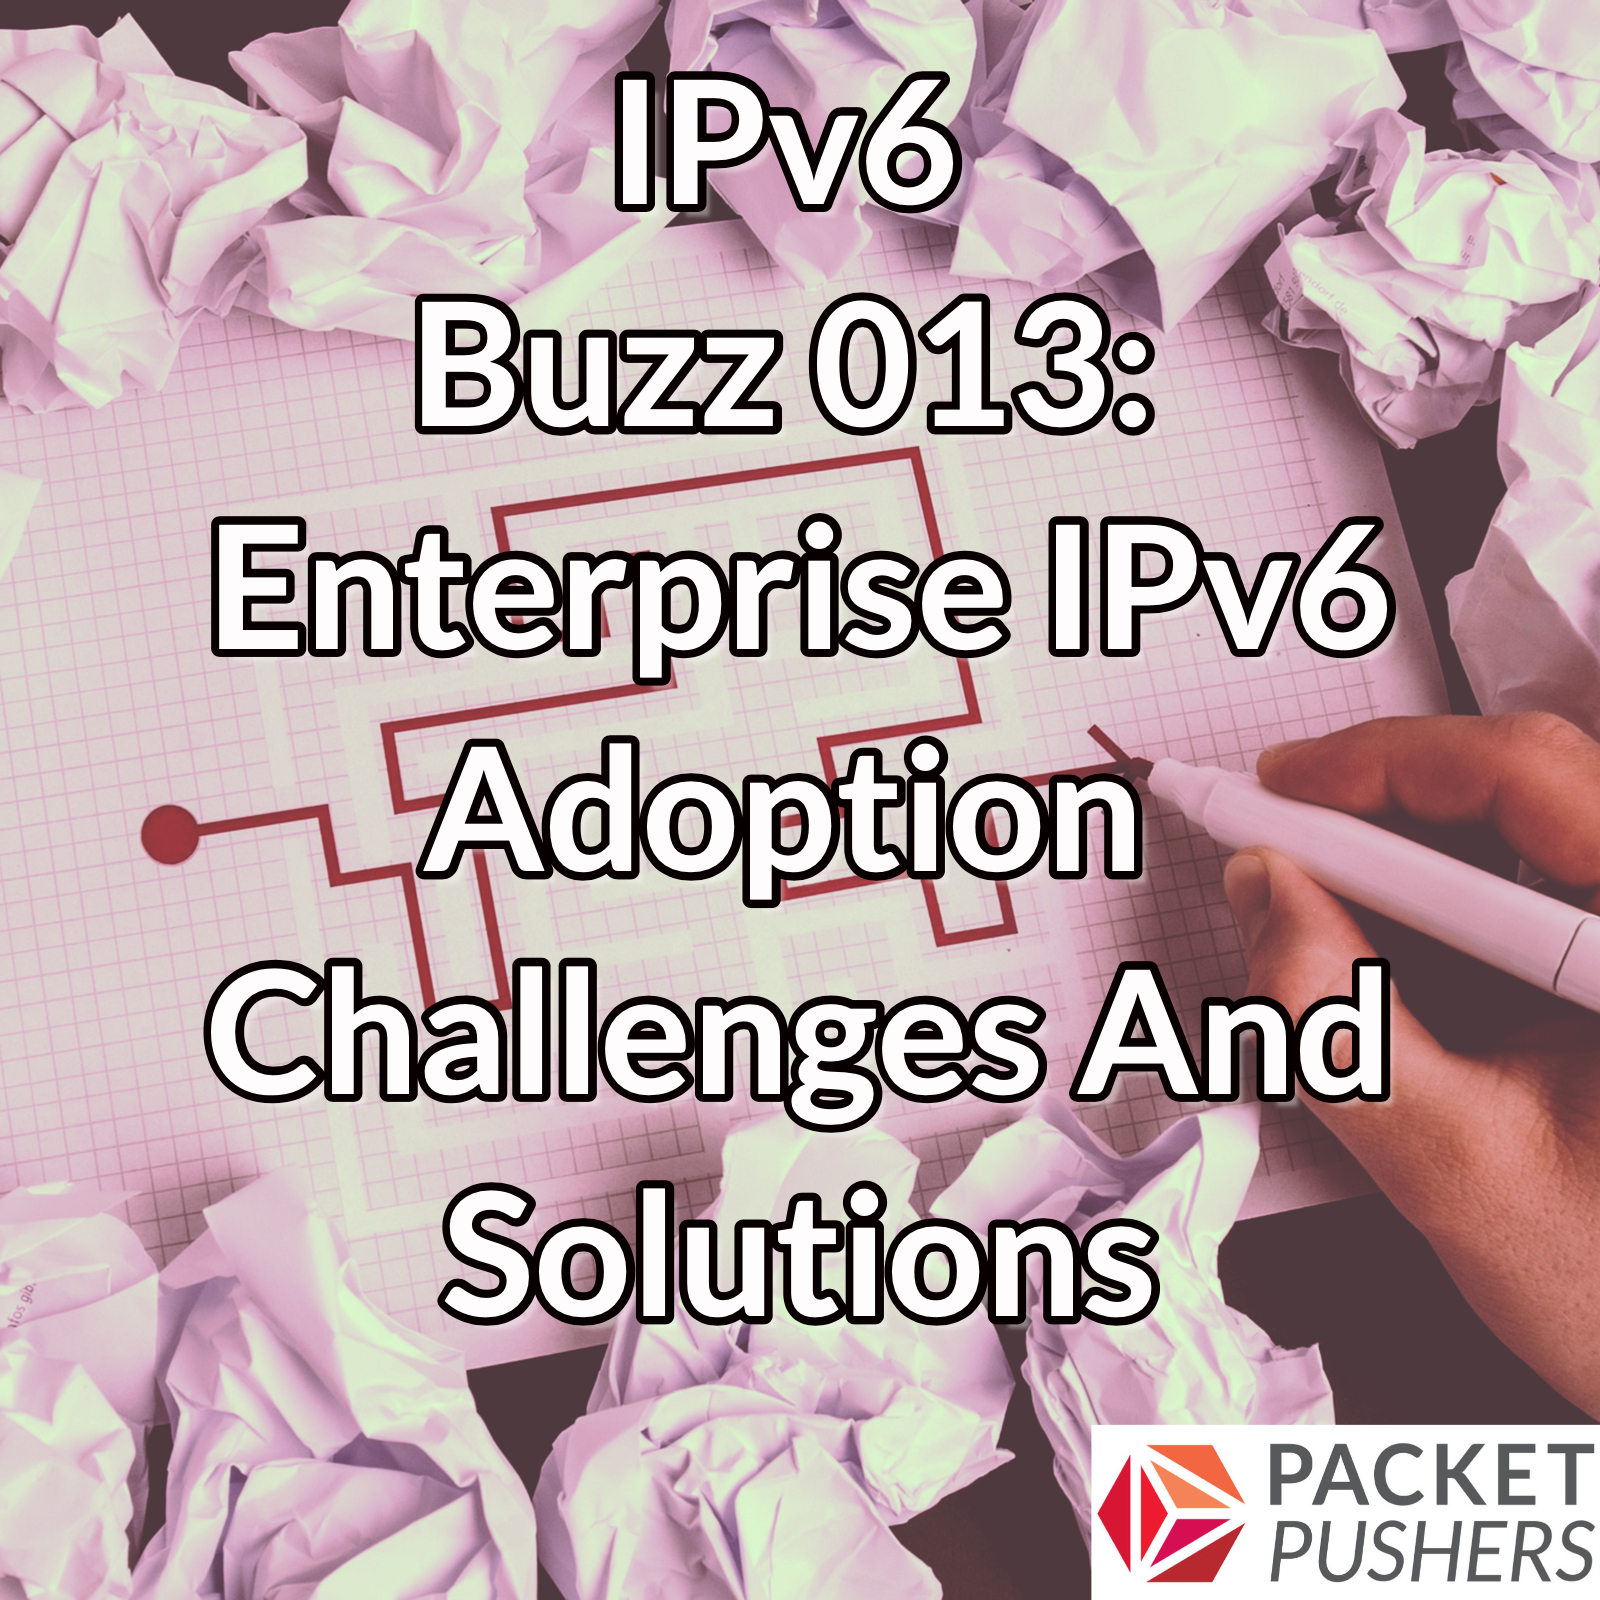 Enterprise IPv65 Adoption challenges and solutions